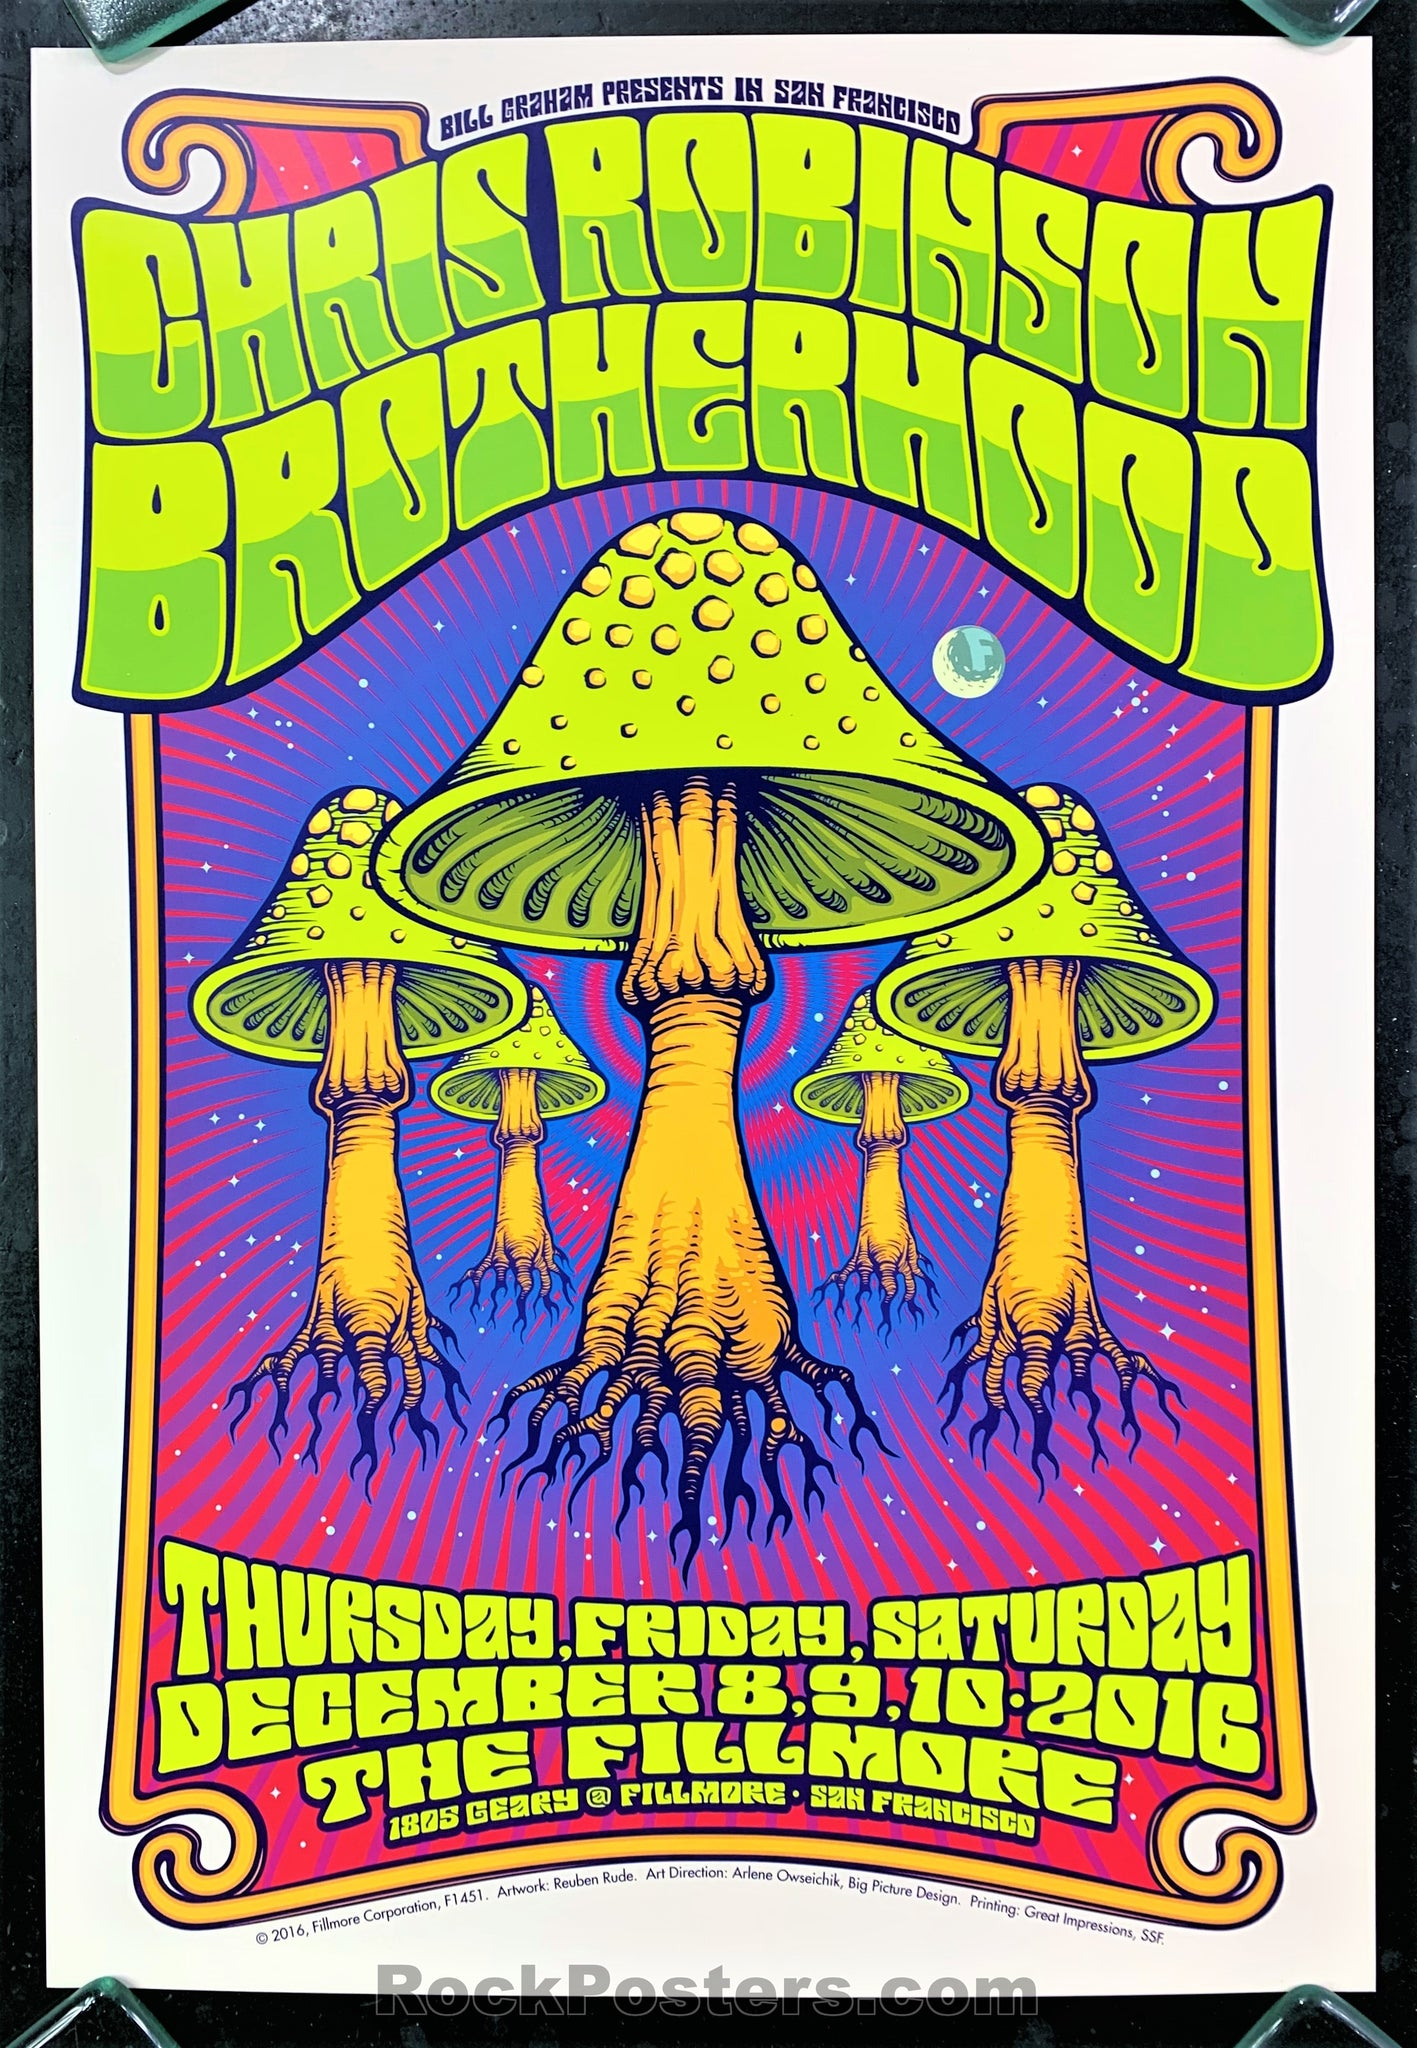 NF-1451 - Chris Robinson Brotherhood Poster - Fillmore Auditorium - Condition - Near Mint Minus